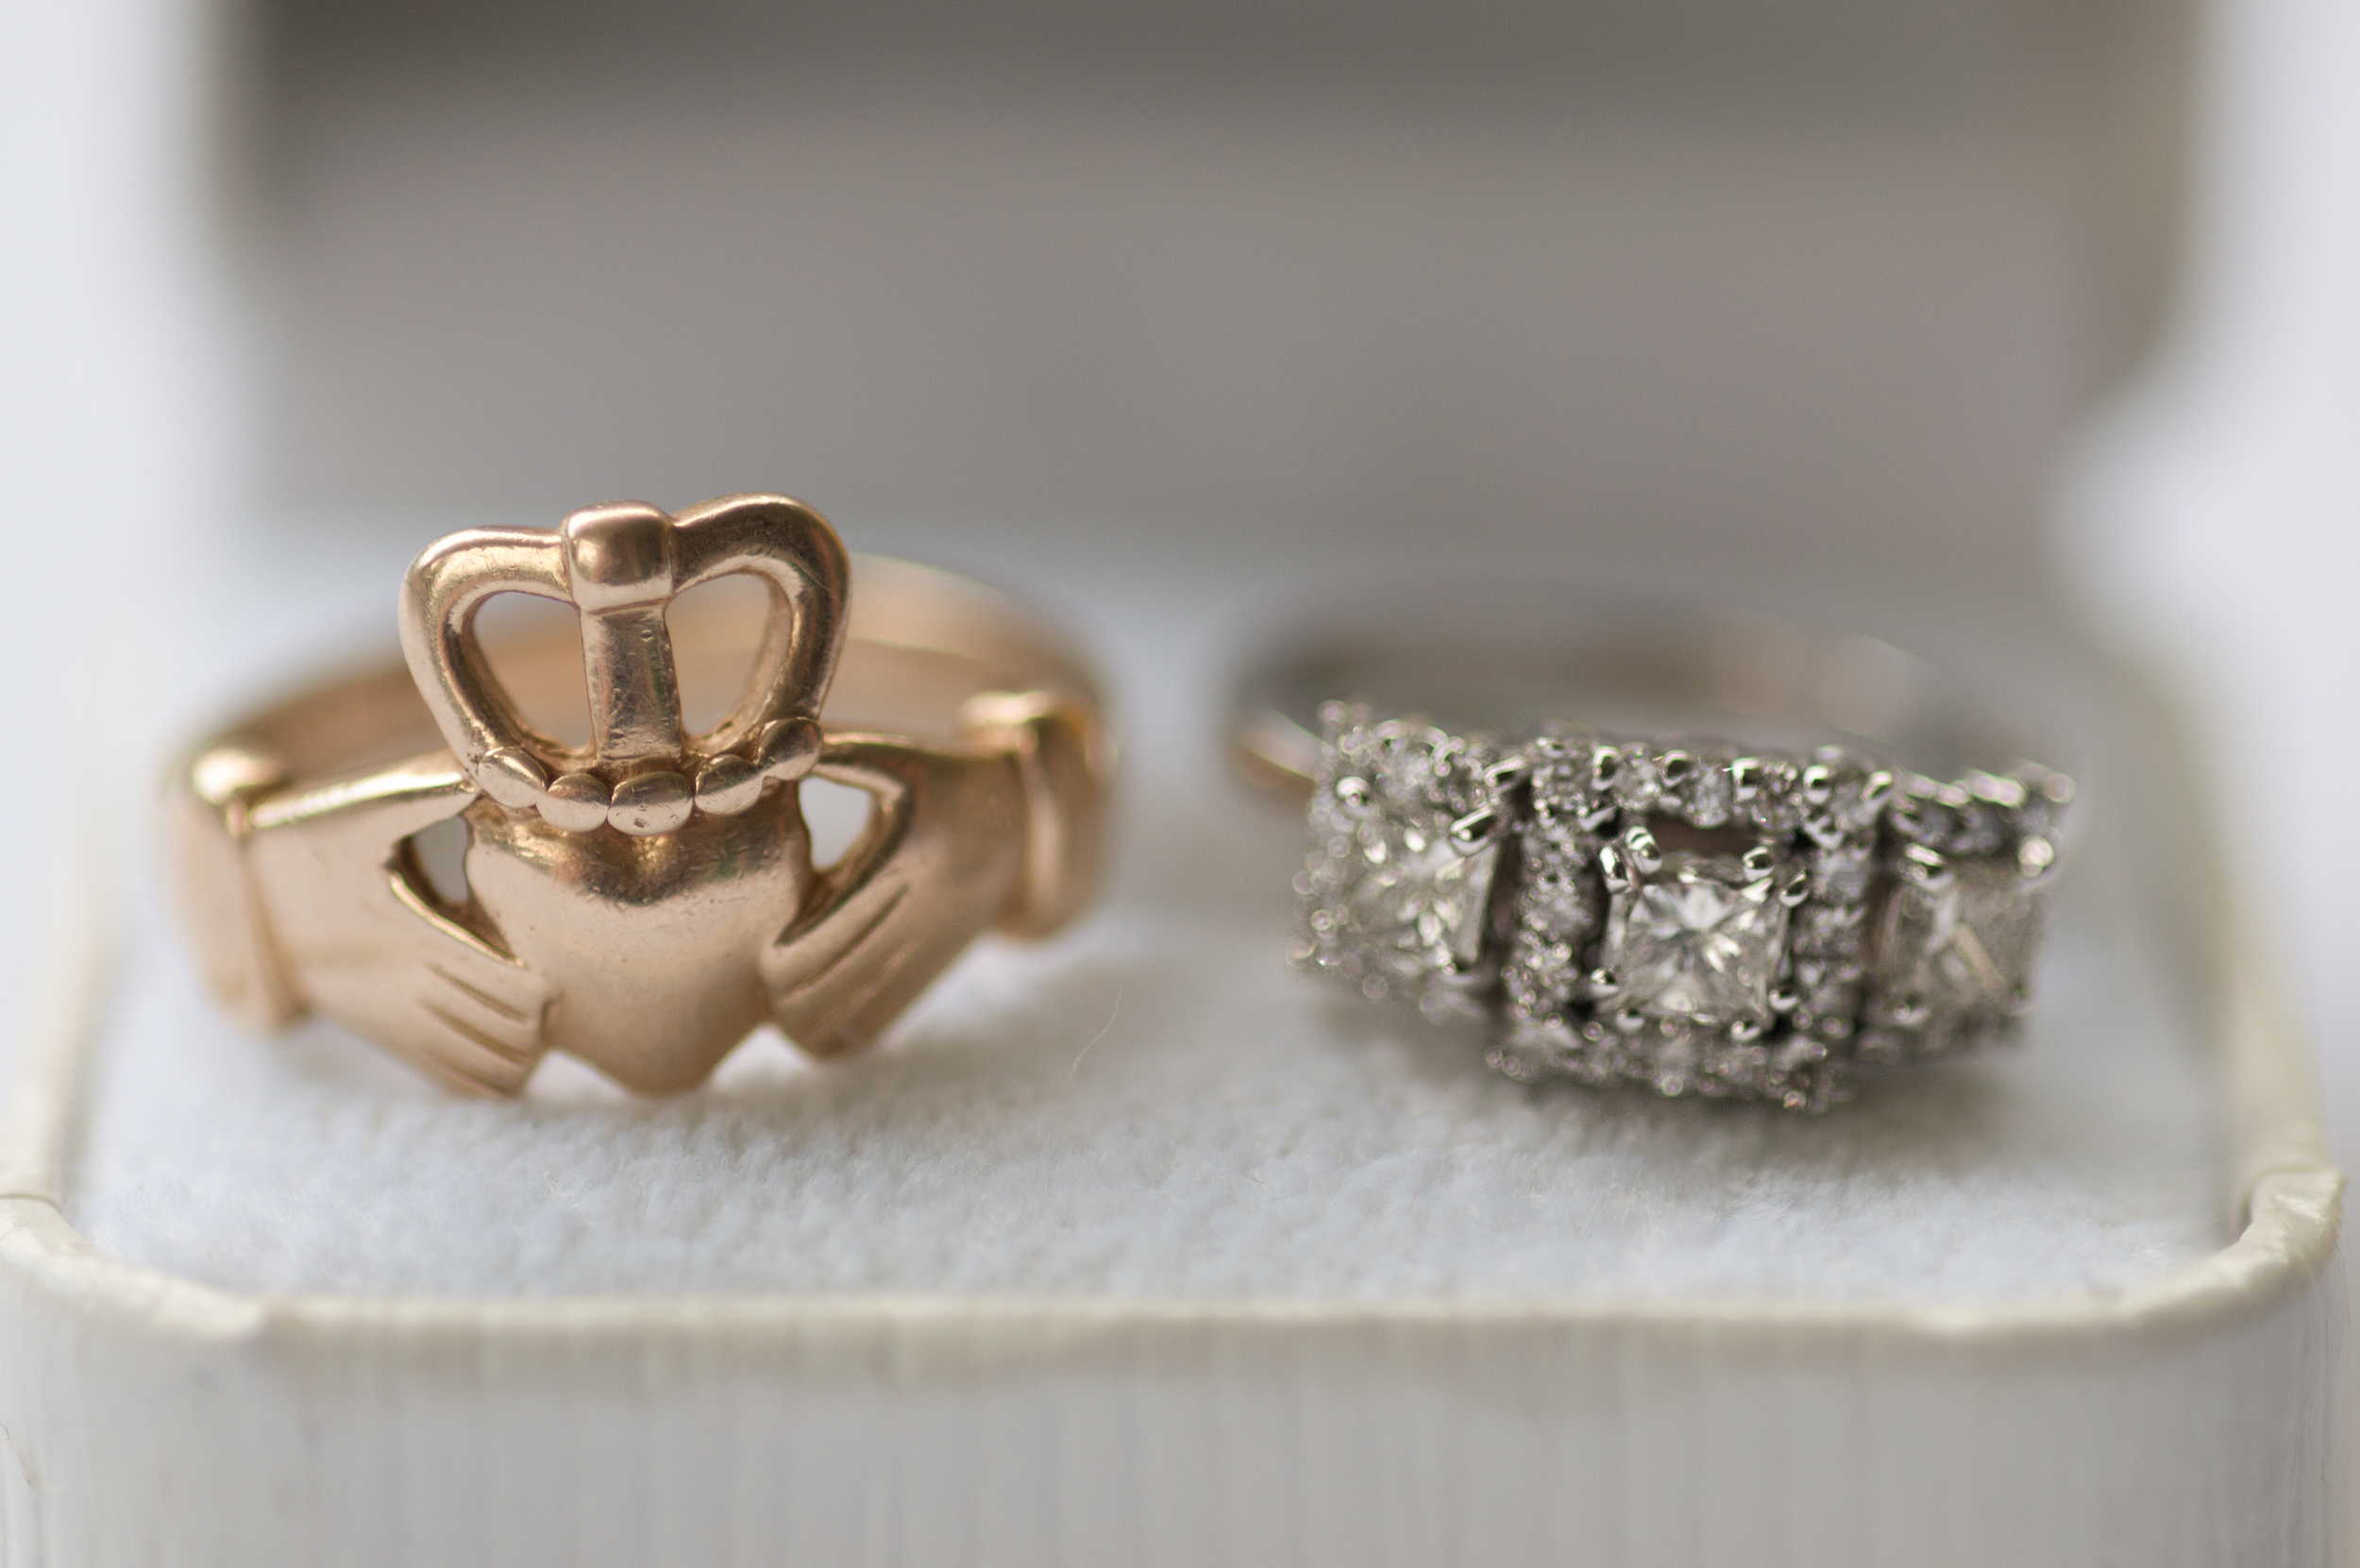 wedding-natural-light-photography-rings-bride-groom-claddagh-ring-digital-long-island-wedding-photographer.jpg